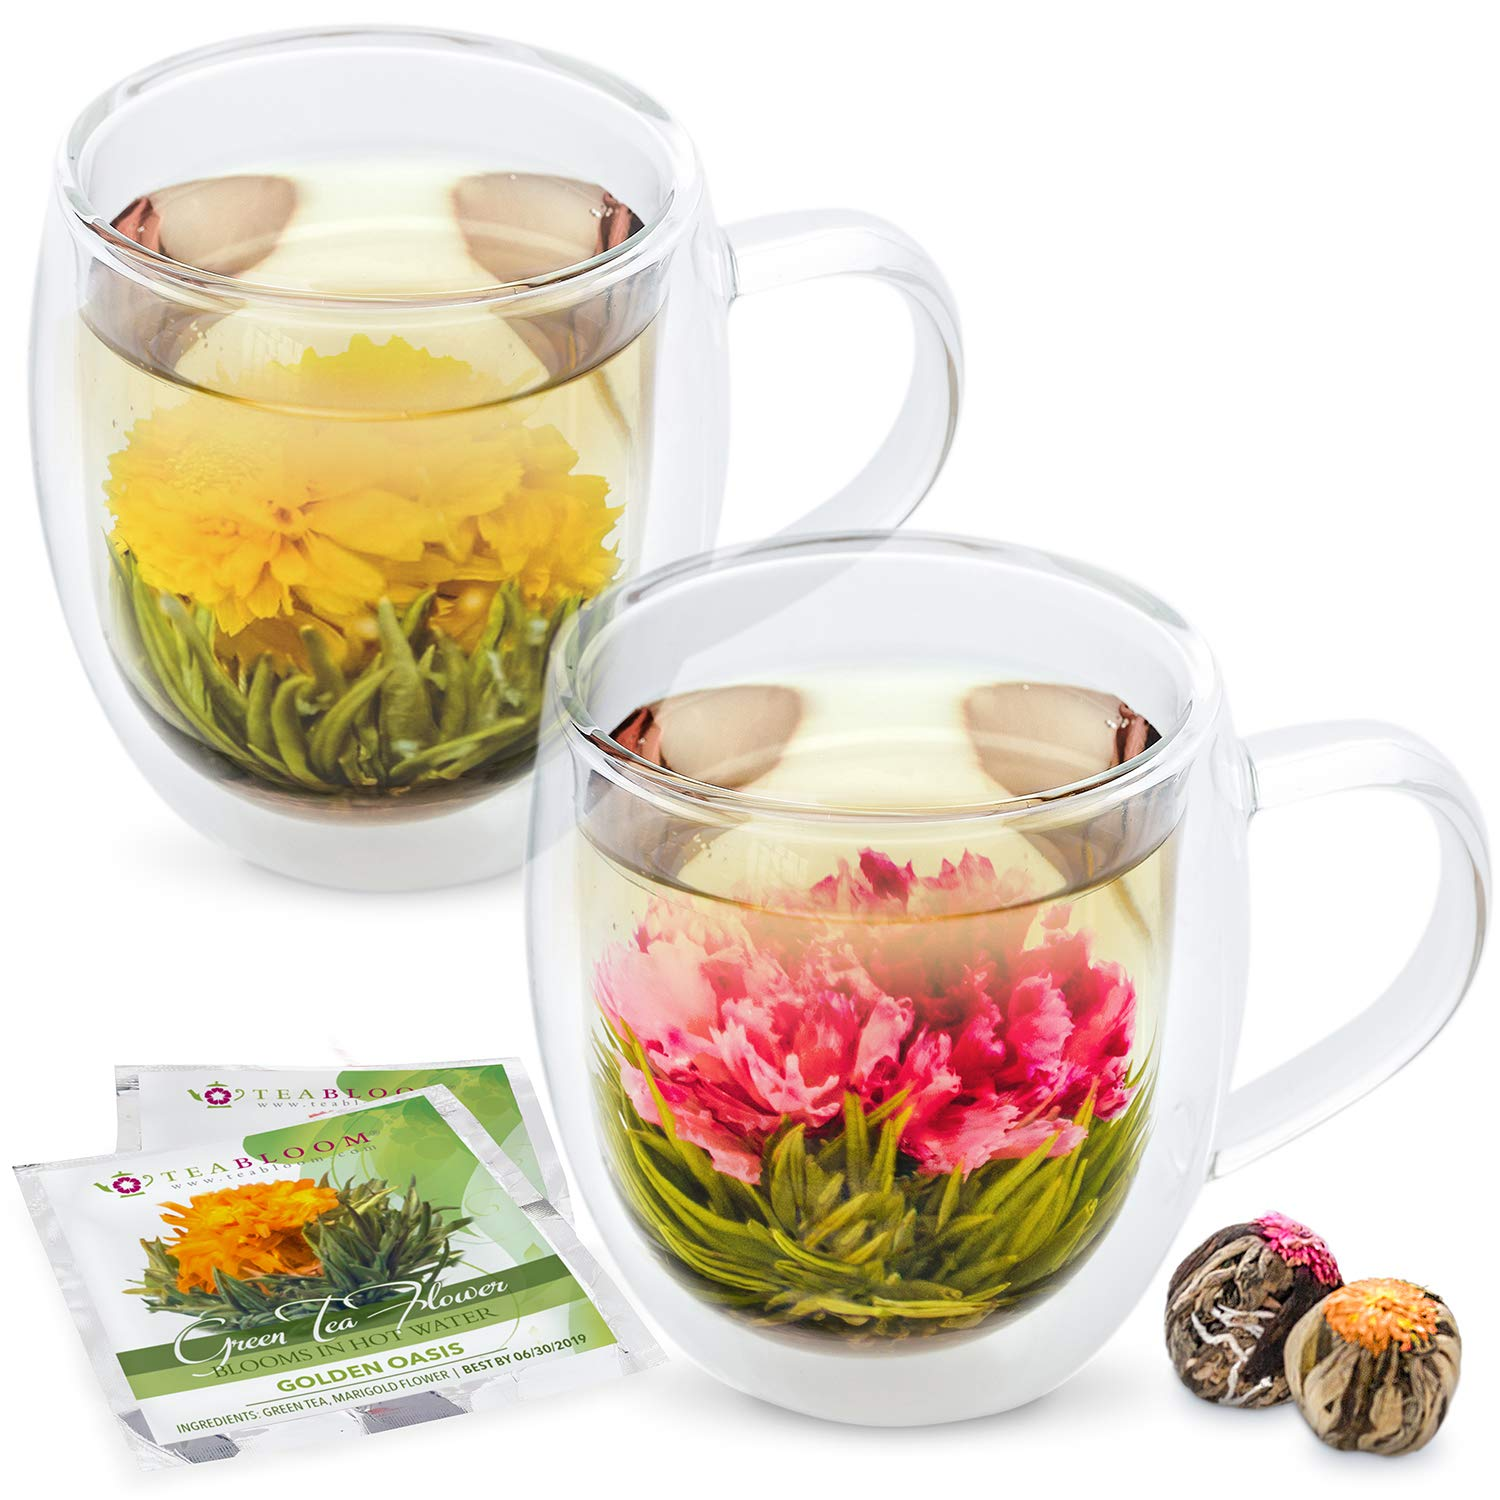 Teabloom Large Insulated Glass Mugs & Blooming Tea Flowers Gift Set (Set of 2 Mugs + 2 Tea Balls) - 550 ml Double Wall Borosilicate Glass Mugs & 2 Gourmet Blooming Green Tea Flowers SYNCHKG095290